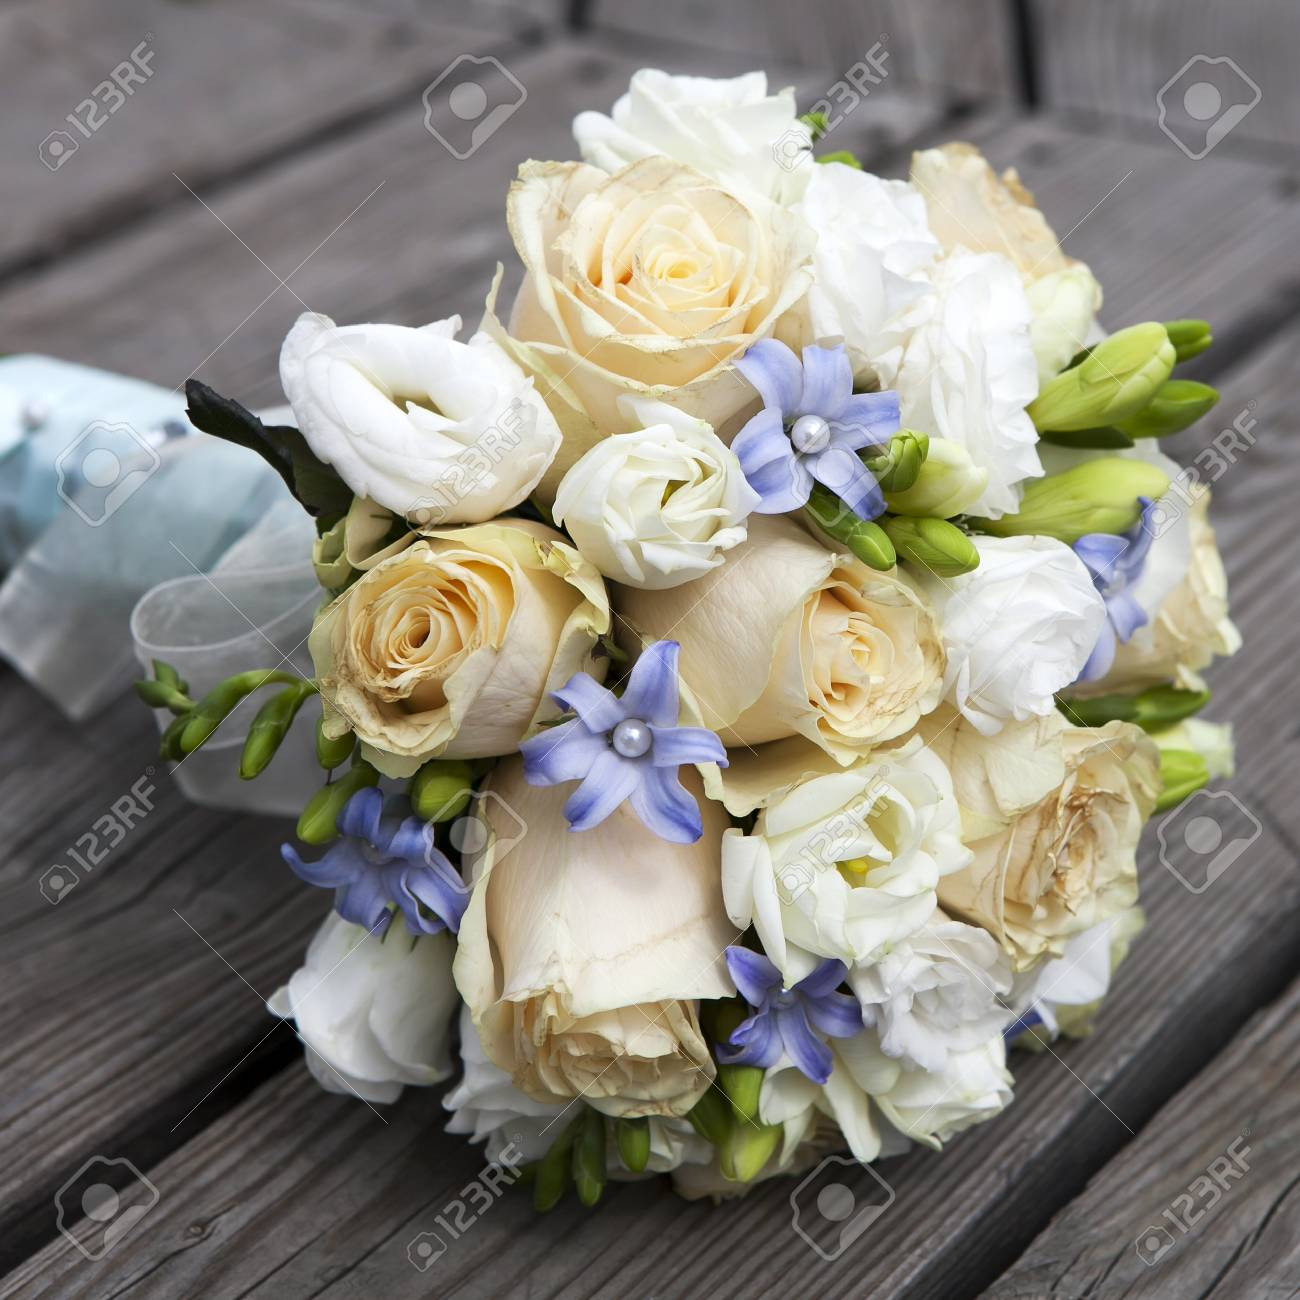 Wedding Bouquet Of Yellow And White Roses And Blue Fresia Lying